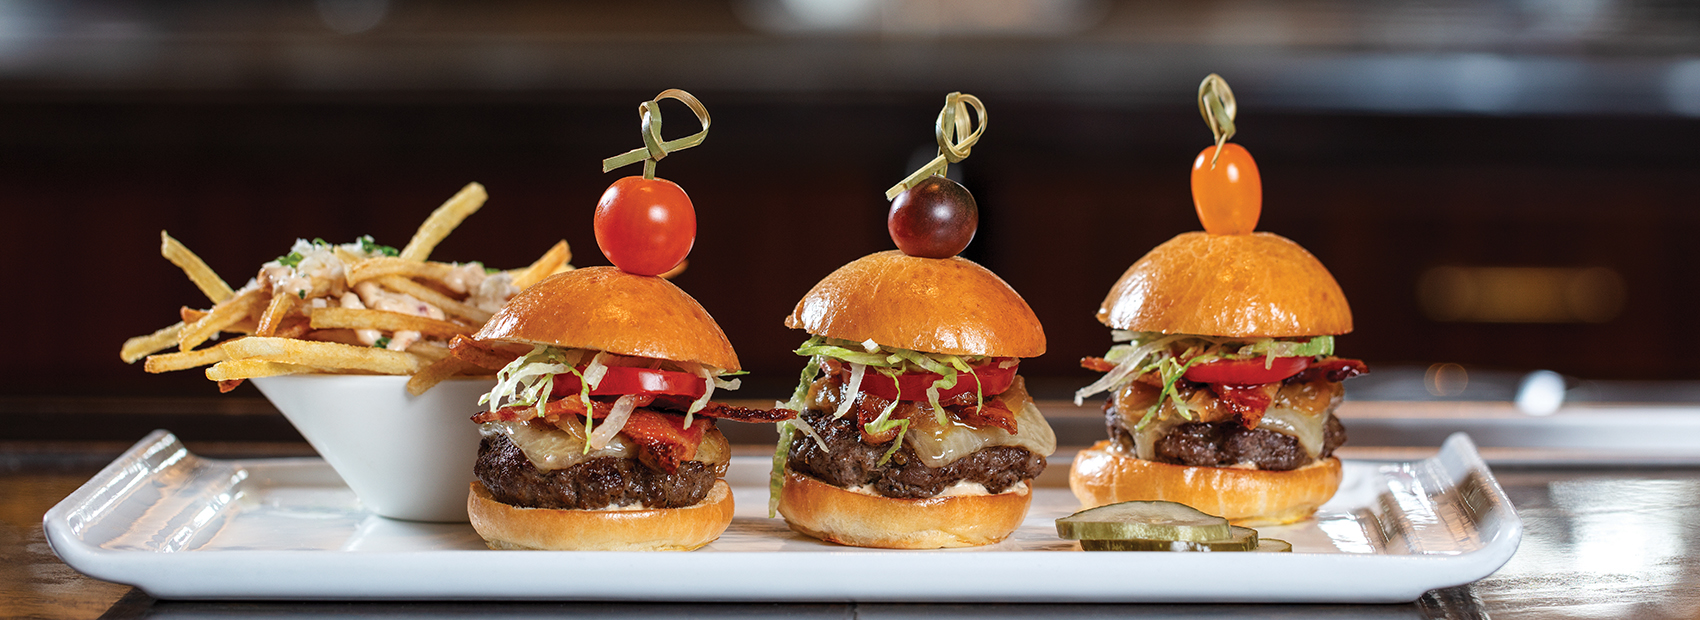 Wagyu Beef Sliders at HMF at The Breakers